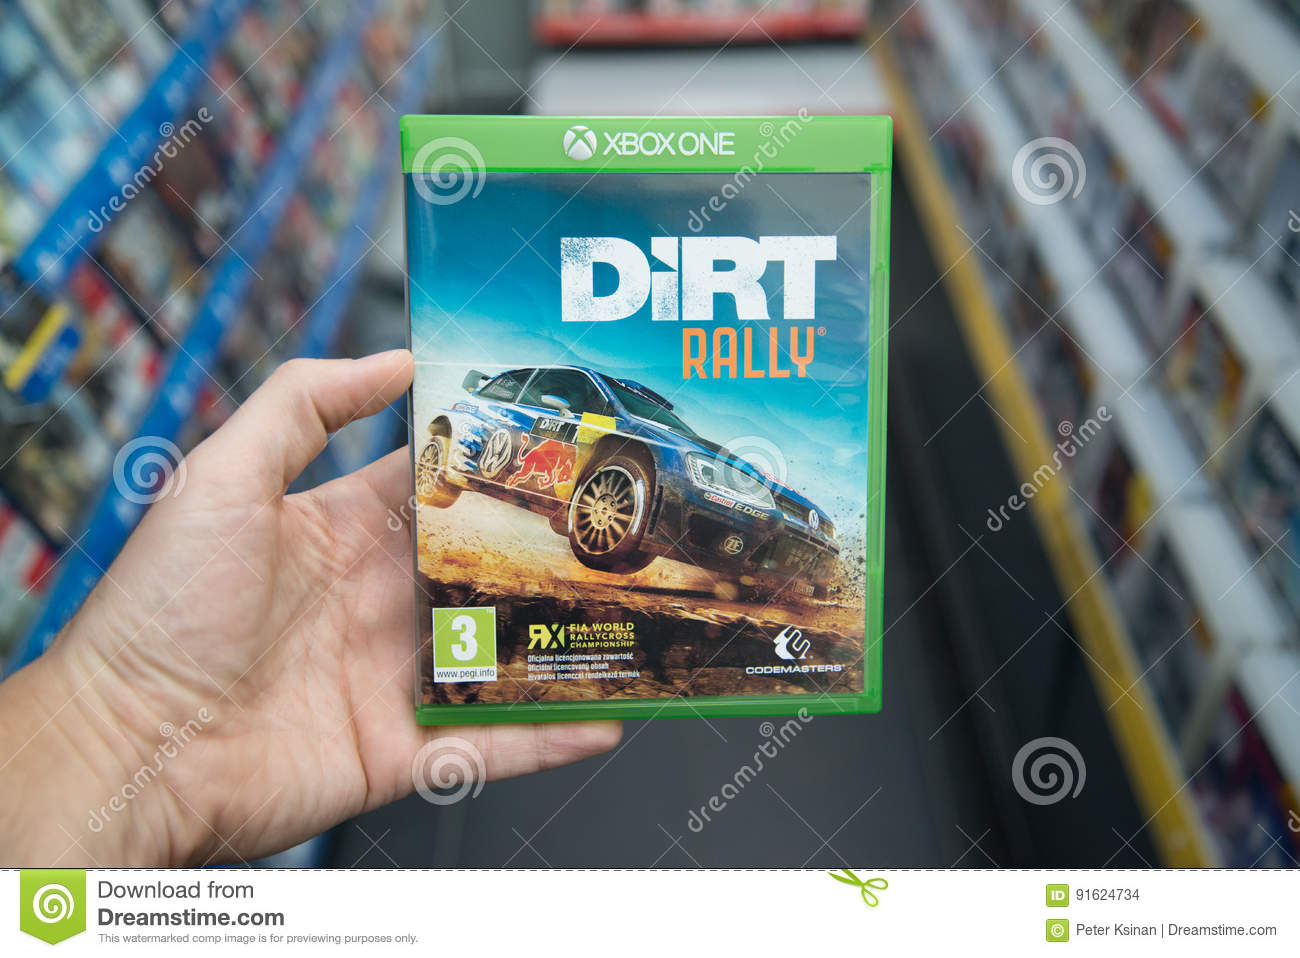 Dirt Rally Xbox One : dirt rally videogame on xbox one editorial stock image image of relaxation gaming 91624734 ~ Aude.kayakingforconservation.com Haus und Dekorationen